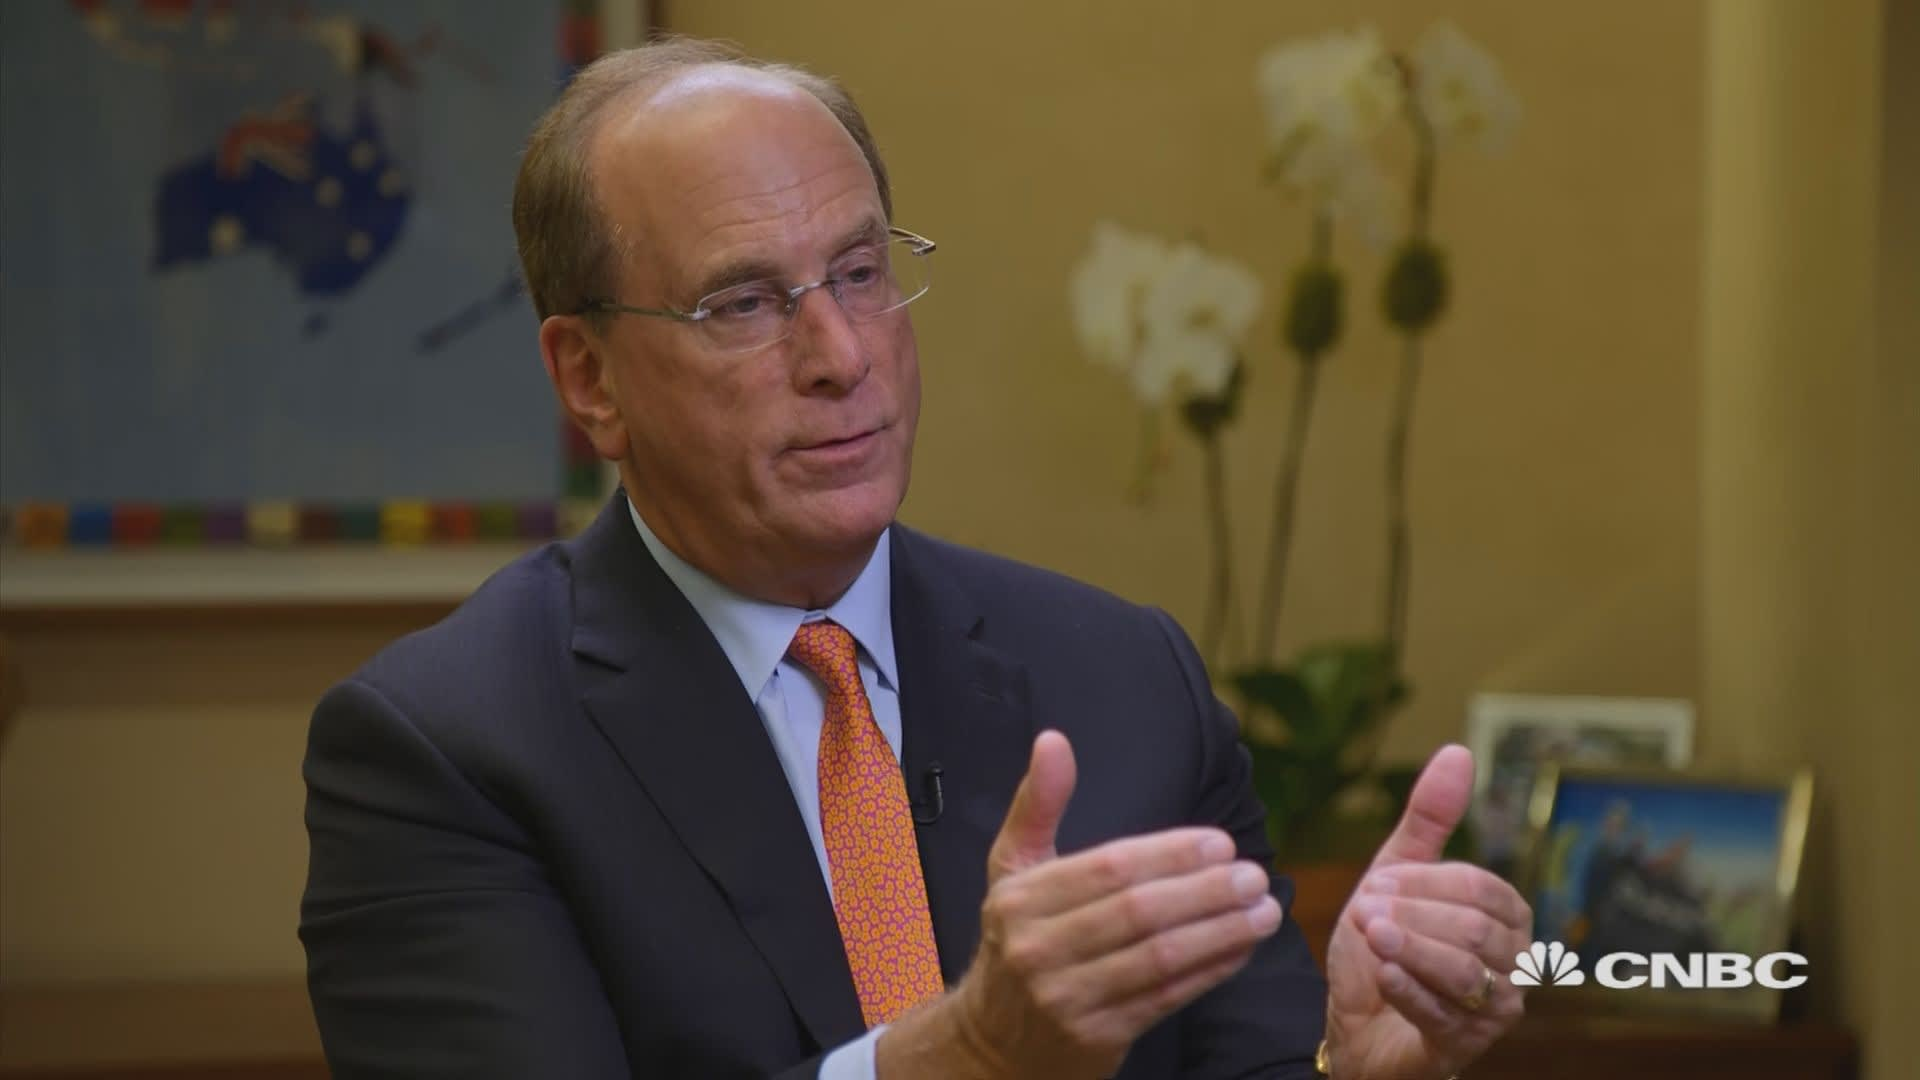 BlackRock CEO Larry Fink says climate change will soon reshape markets